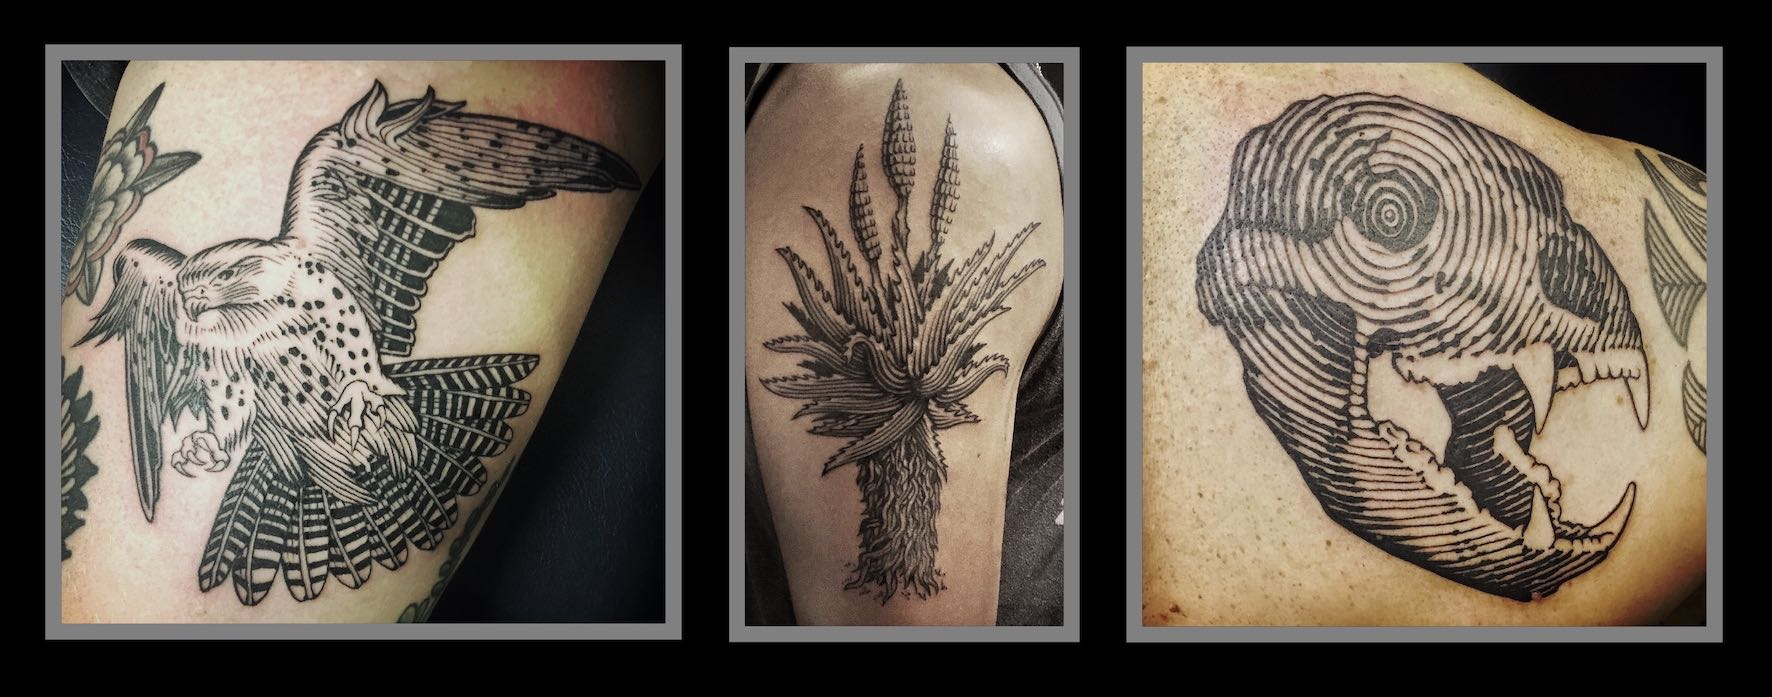 Tattoos done by Tyler B. Murphy